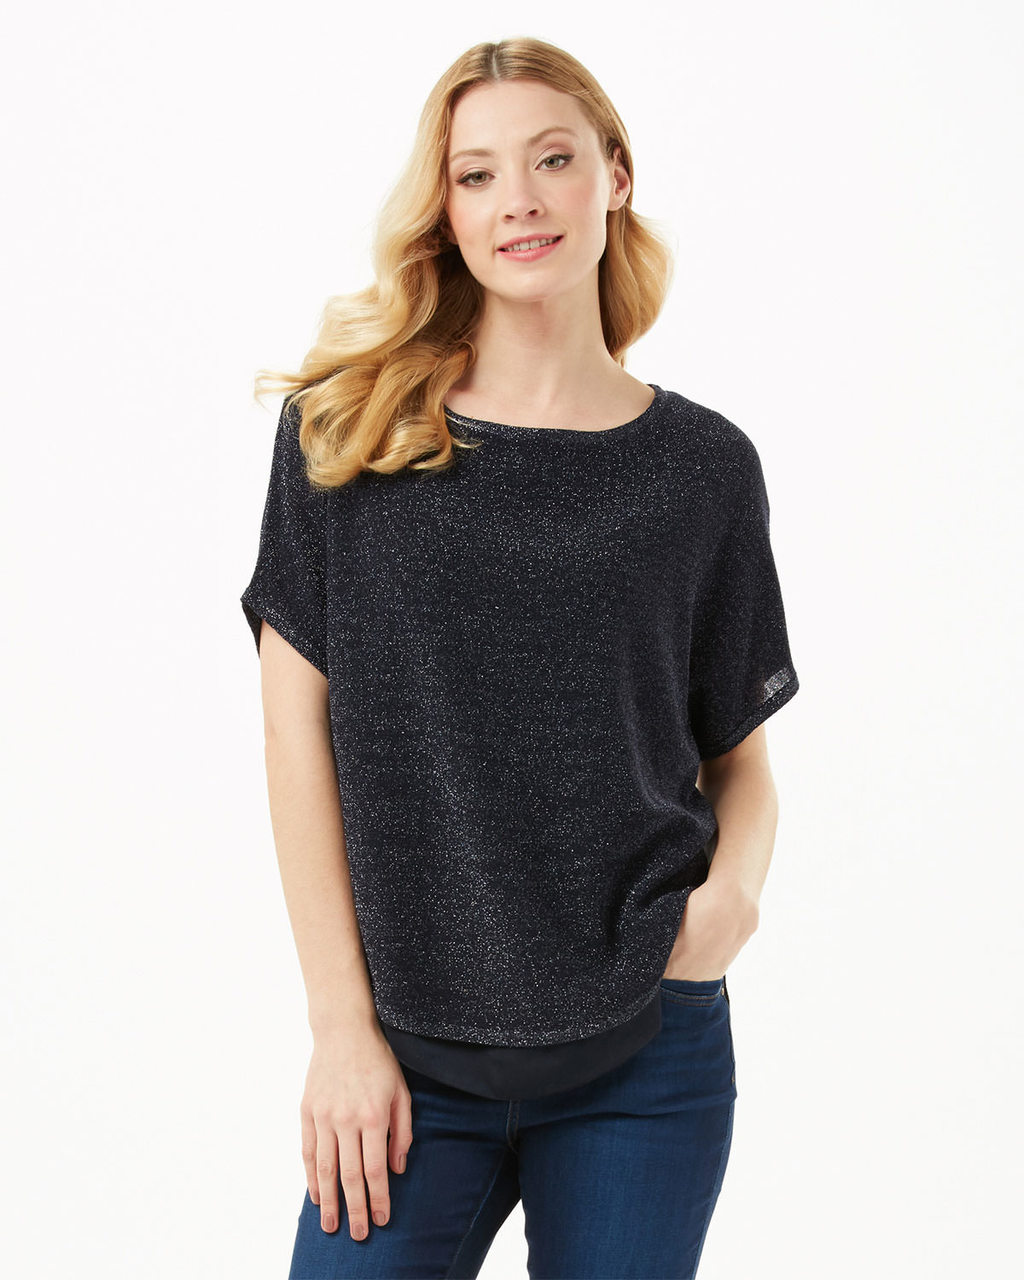 Tape Yarn Macey Jumper - pattern: plain; style: standard; predominant colour: charcoal; occasions: casual; length: standard; fibres: cotton - mix; fit: loose; neckline: crew; sleeve length: short sleeve; sleeve style: standard; texture group: knits/crochet; pattern type: fabric; season: s/s 2016